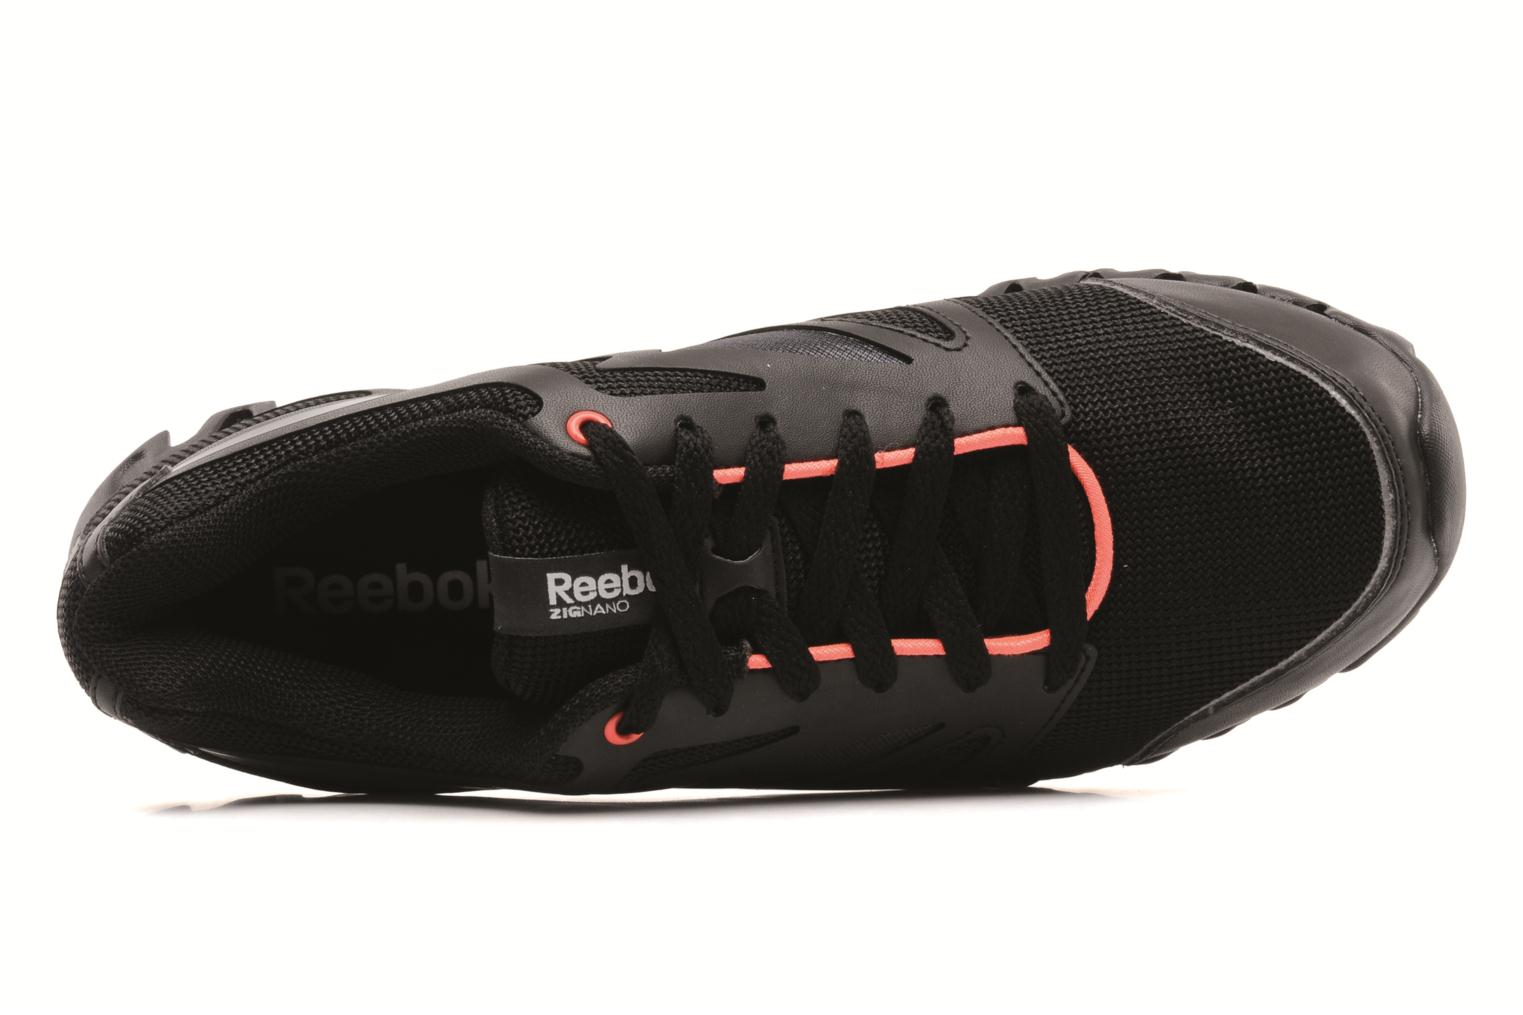 Reebok Zignano Fly To Se oEf5NM